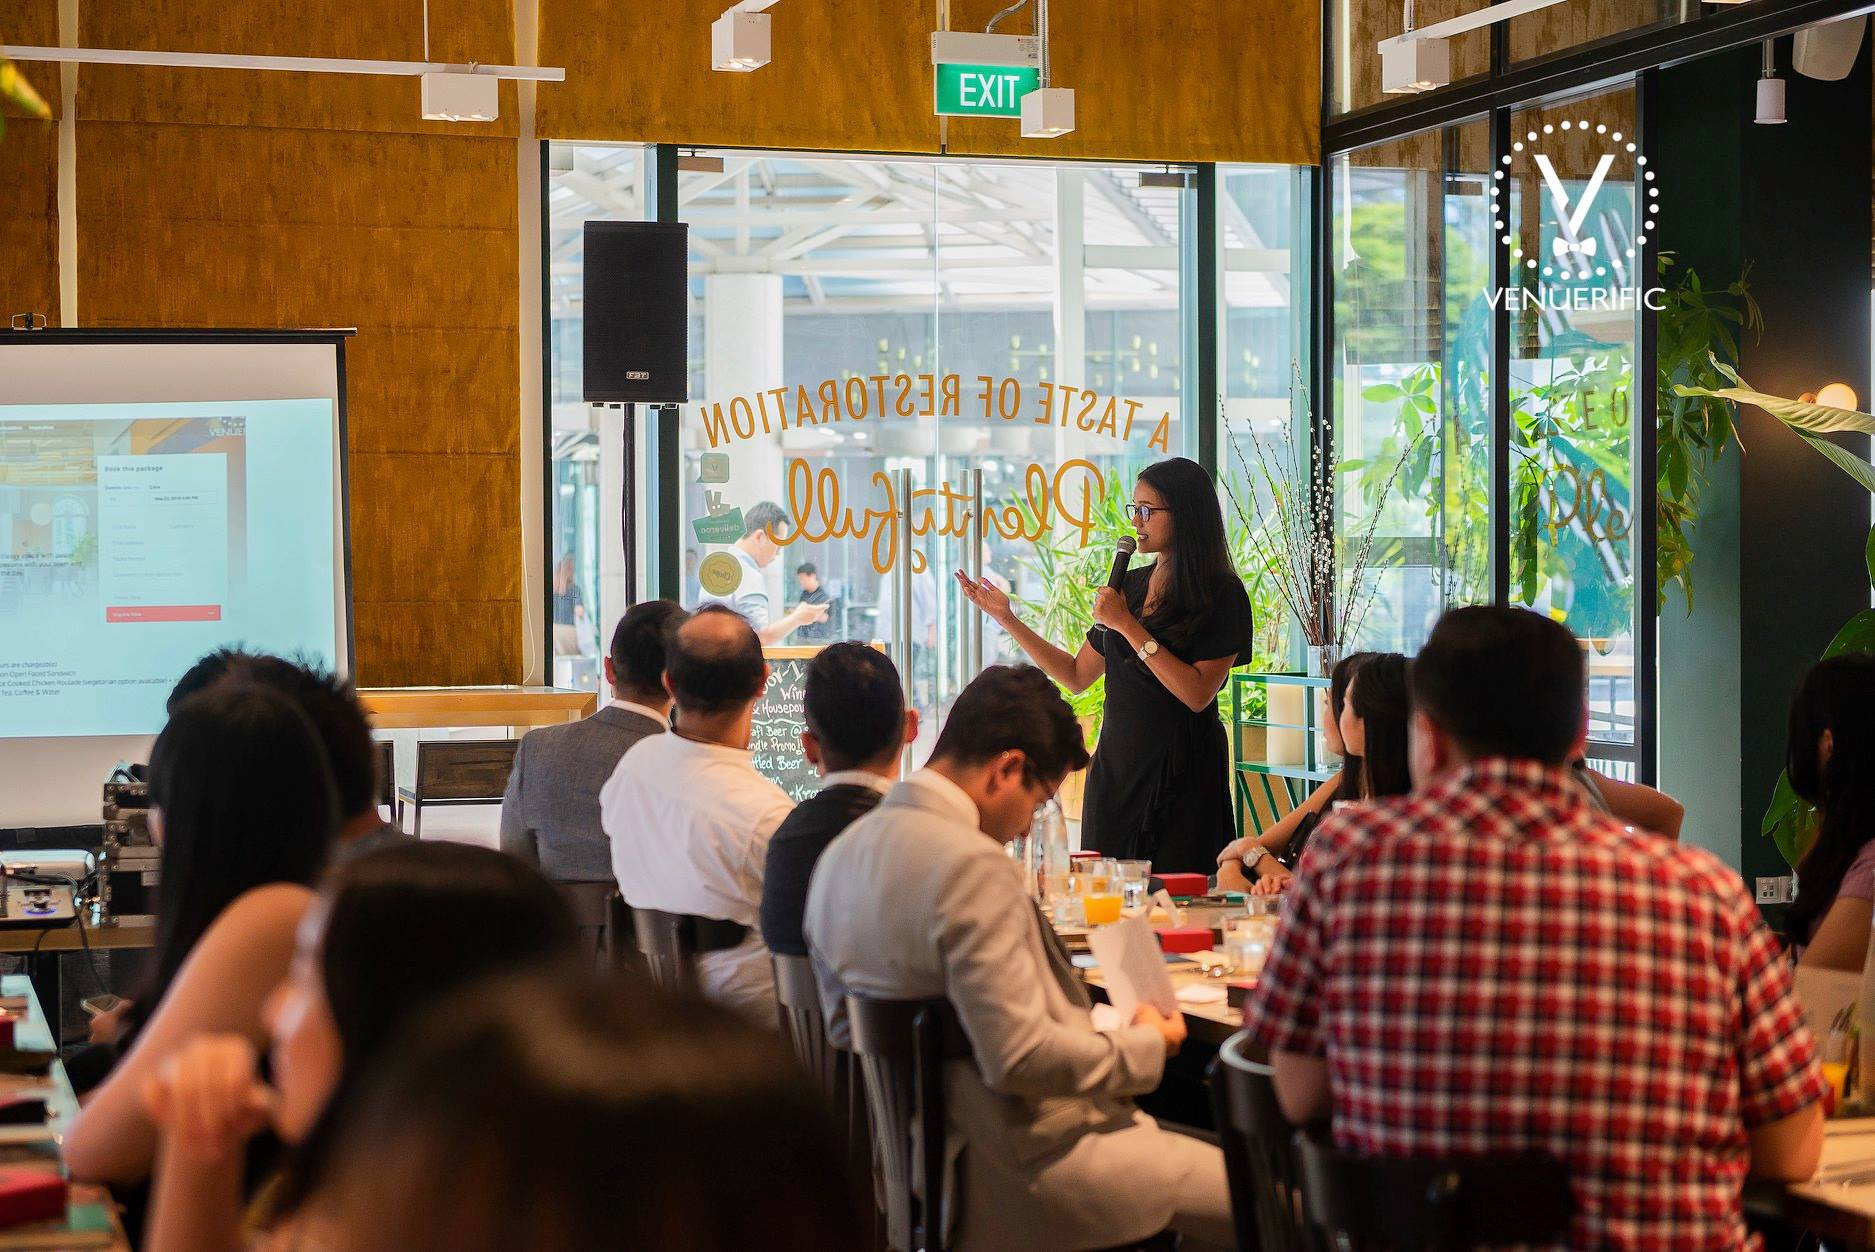 Venuerific Launches Corporate Luncheon Series in Partnership with Grab in Singapore 2018